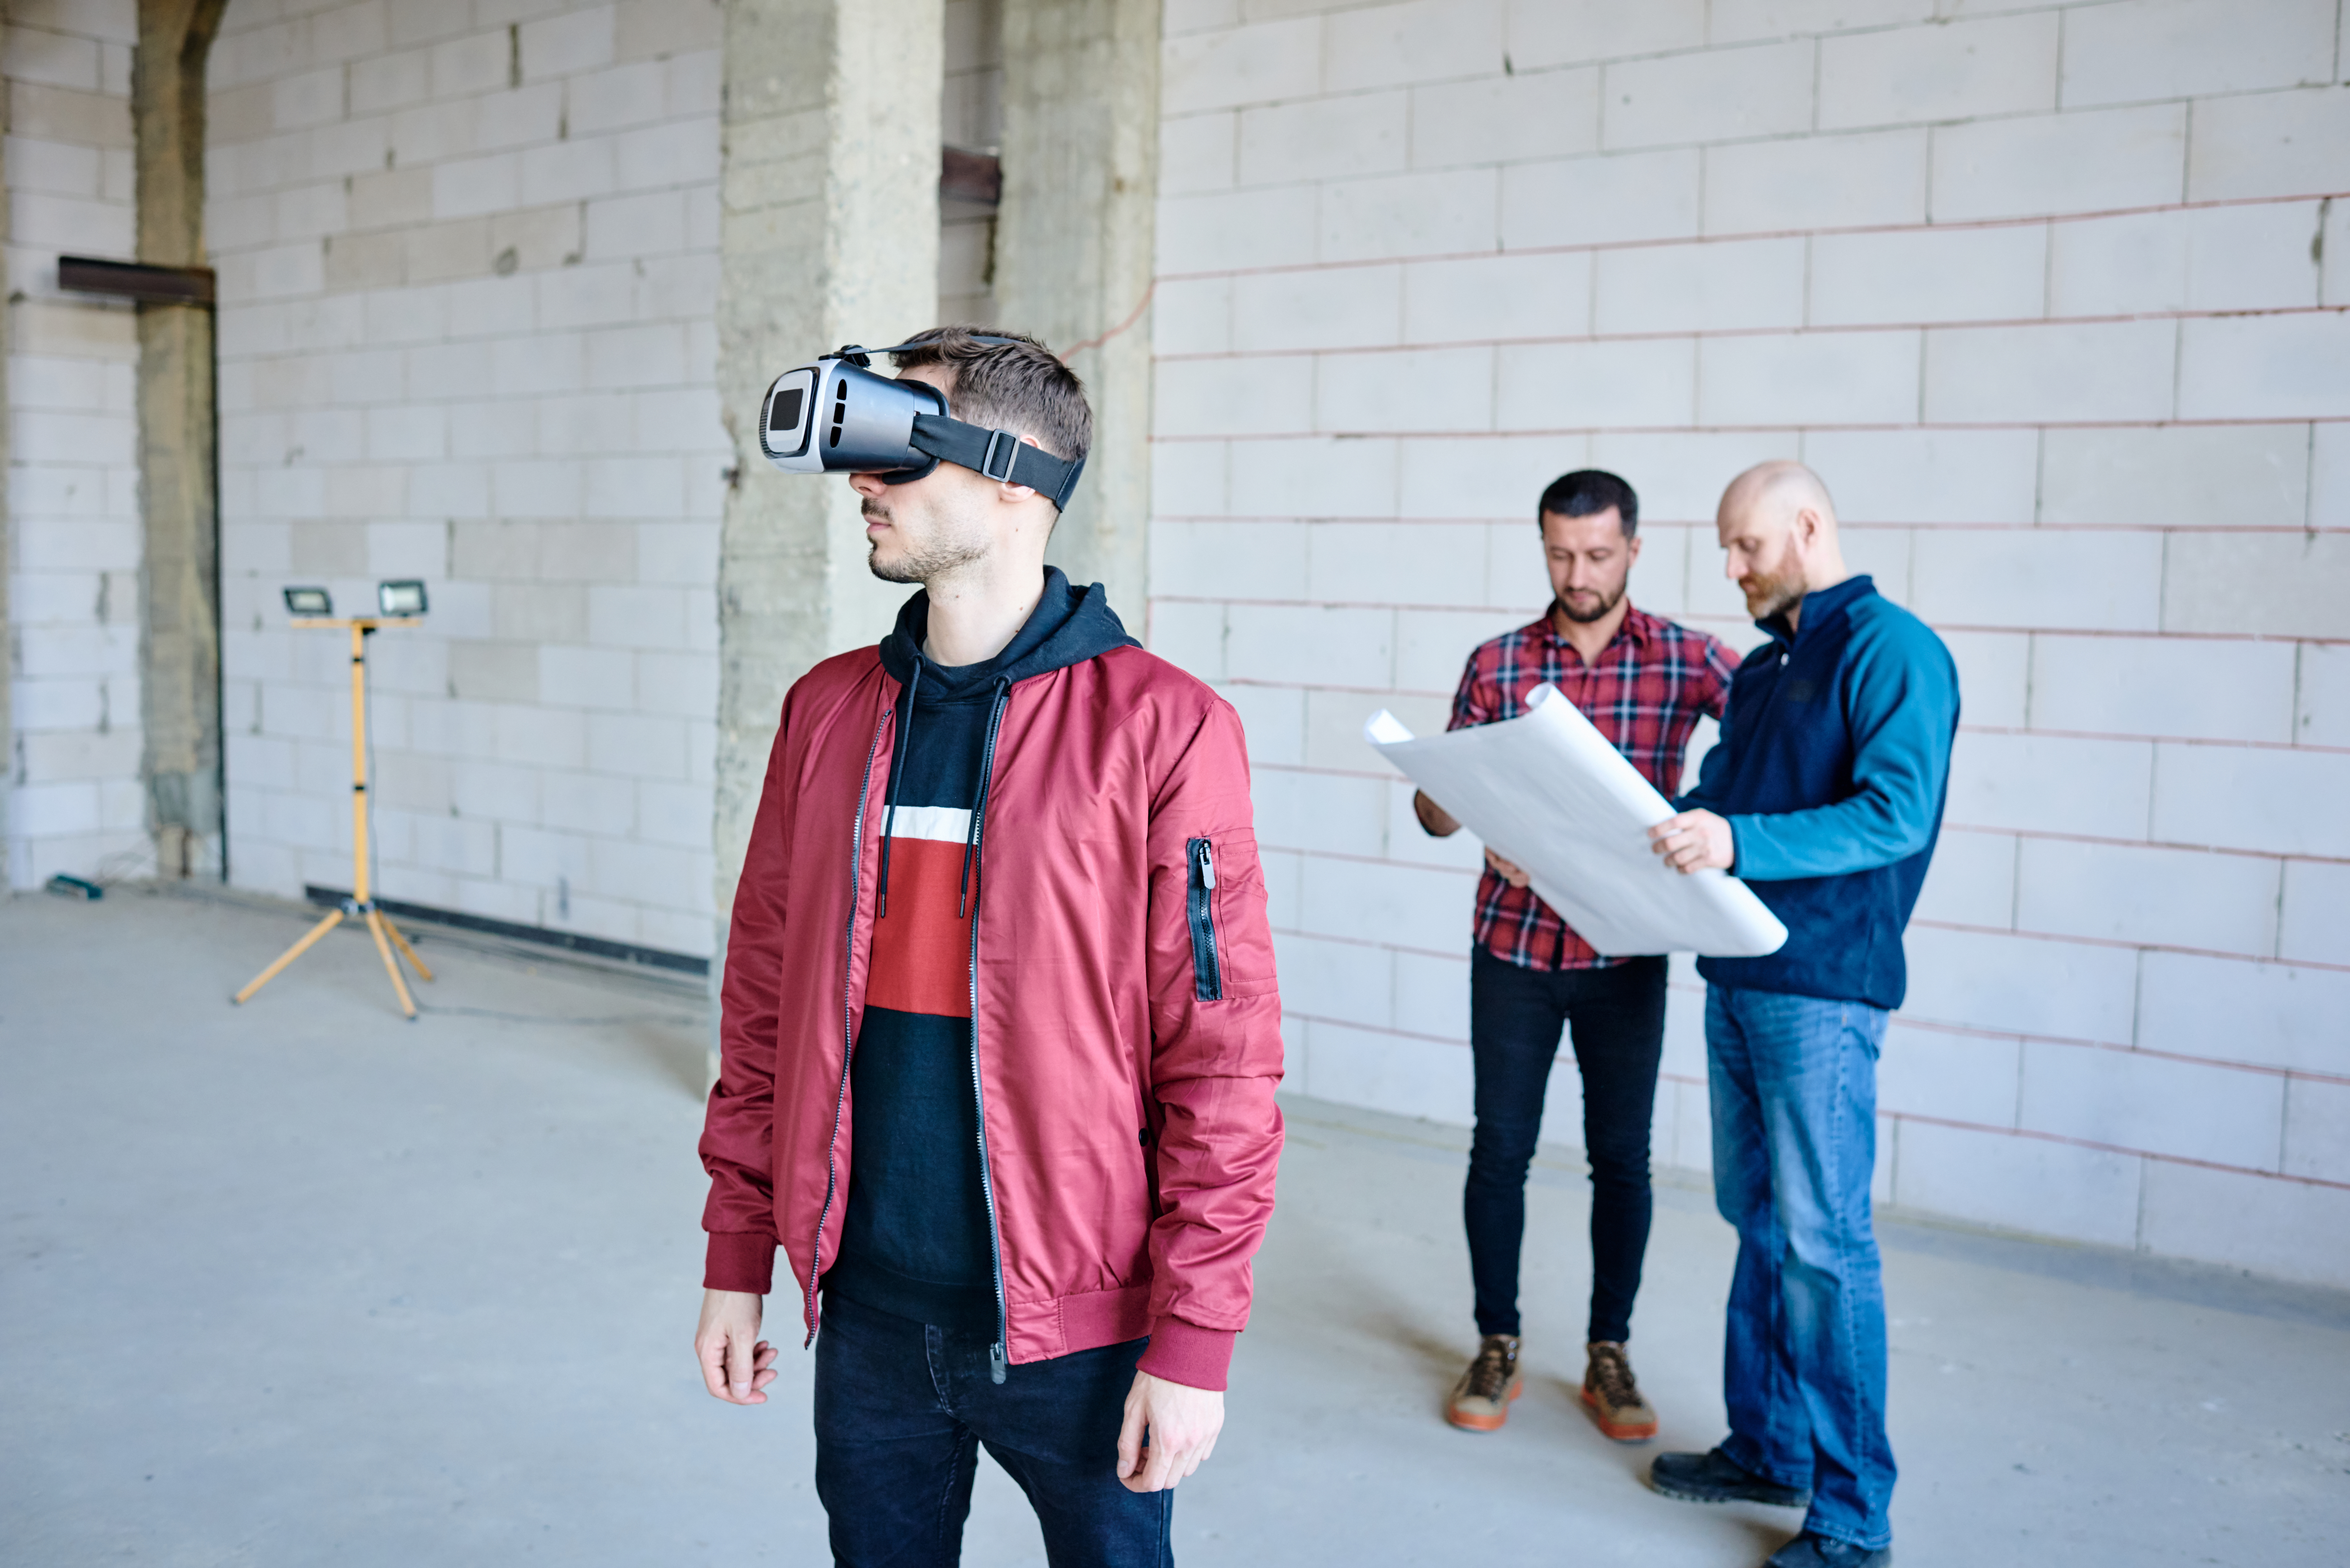 young-architect-designer-casualwear-vr-goggle-standing-inside-unfinished-building-watching-presentation-interiors.jpg